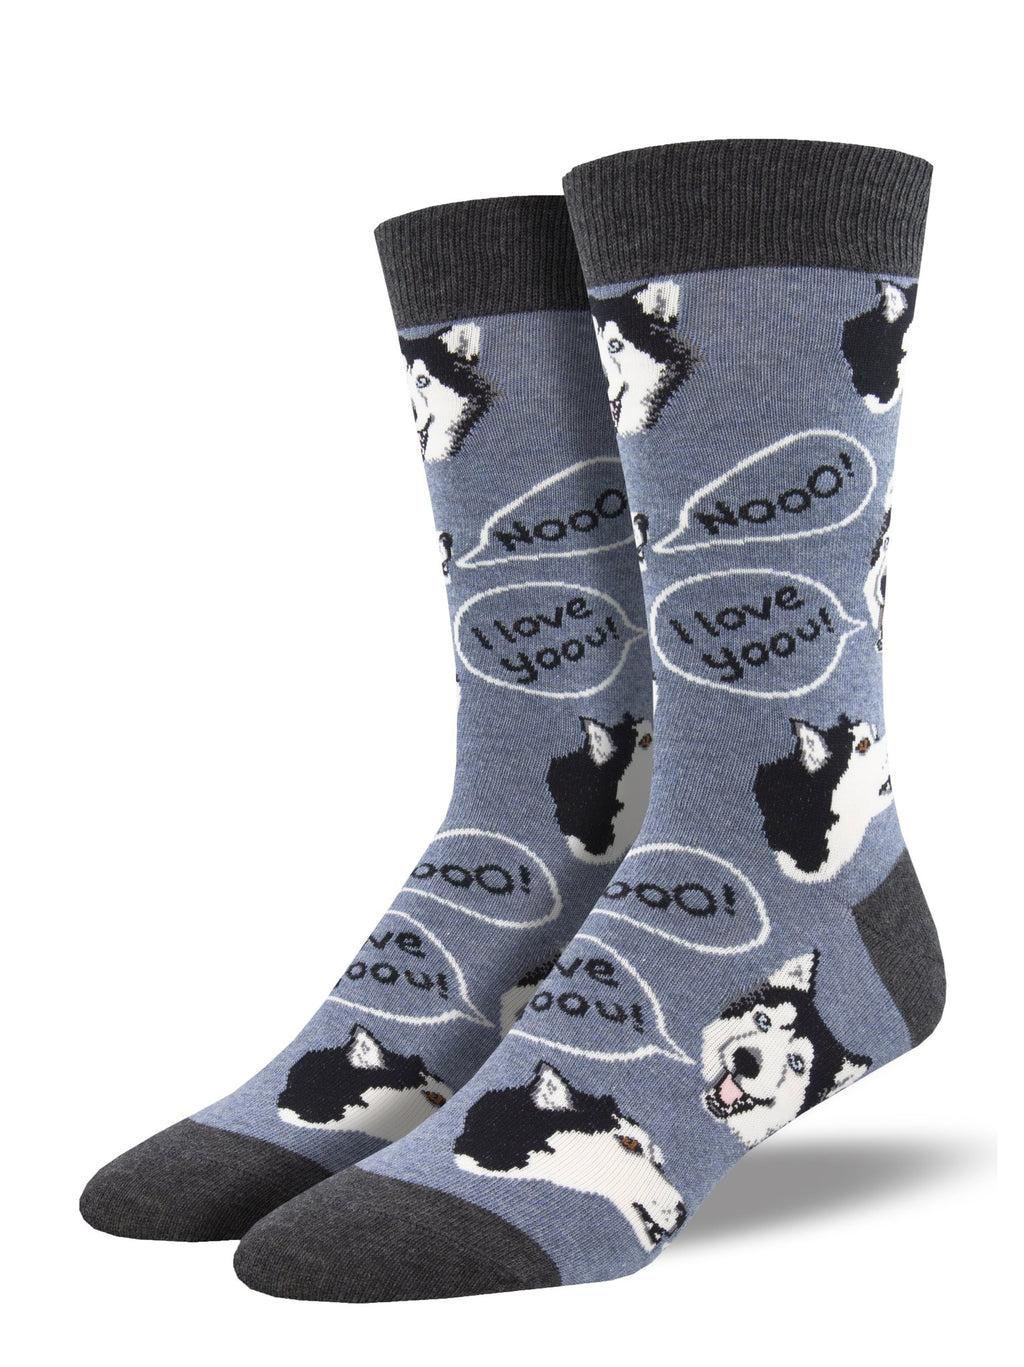 Howling For You Demin Heather Men's Socks